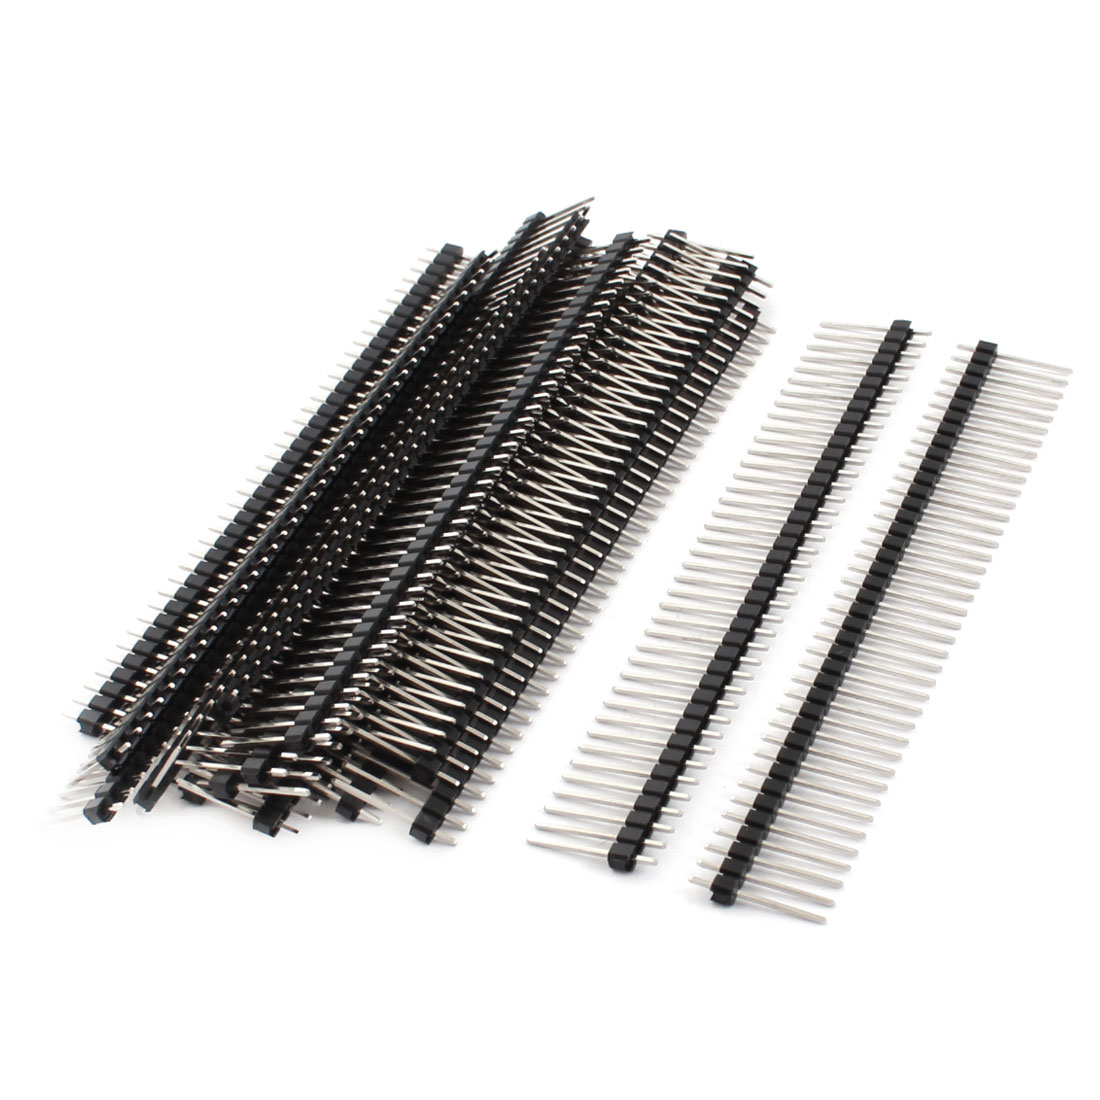 20 Pcs 2.54mm Pitch One Row 40Pin Male Through Hole Straight Pin Header Strip Connector 11mm Length